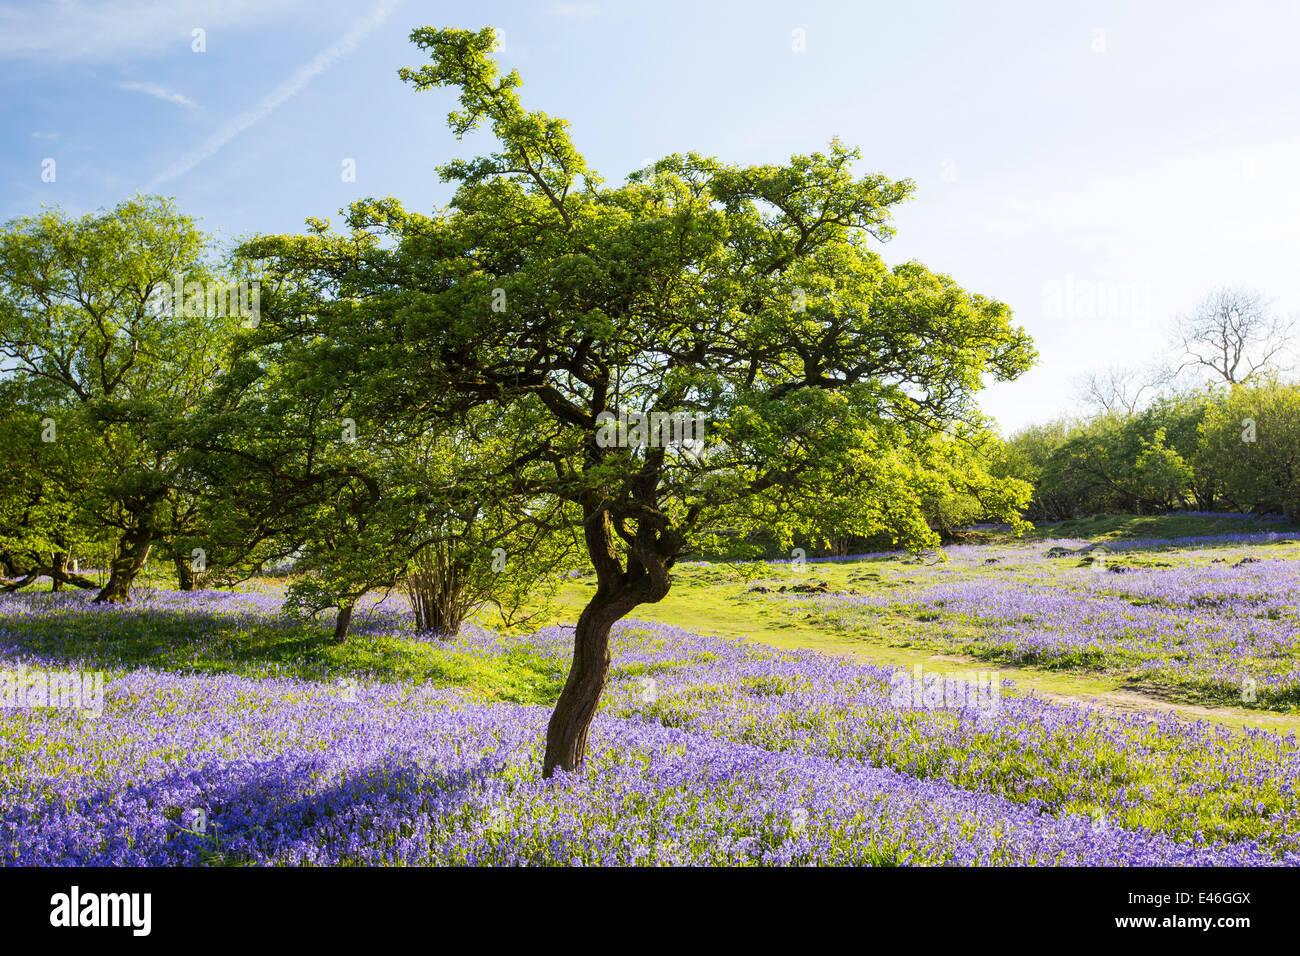 A Hawthorn Tree growing amongst Bluebells on a limestone hill in the Yorkshire Dales National Park, UK. - Stock Image